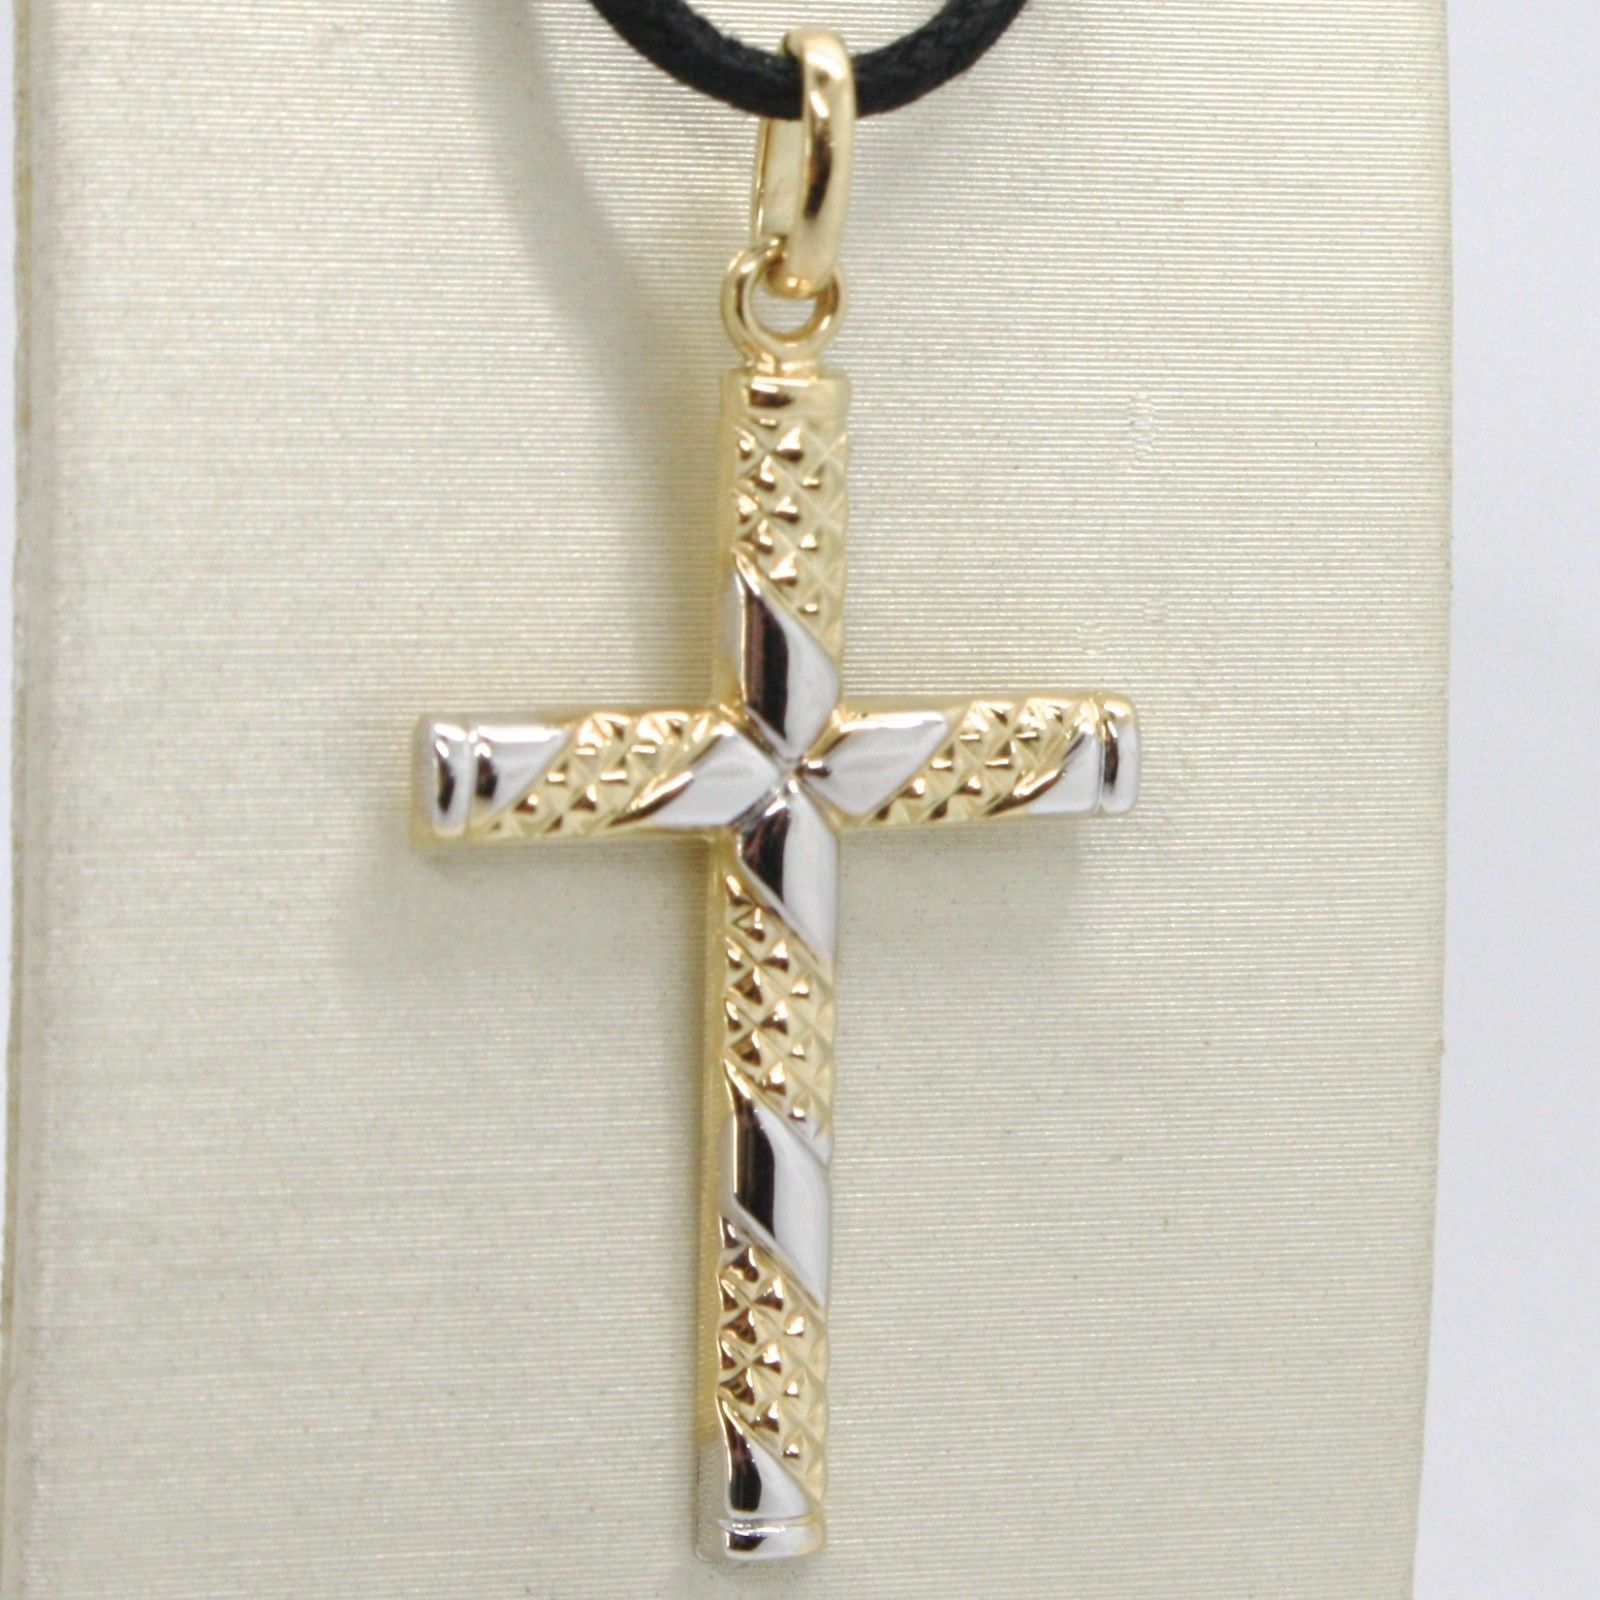 18K YELLOW & WHITE GOLD CROSS PENDANT, FINELY WORKED FLOWER 3.4 CM MADE IN ITALY